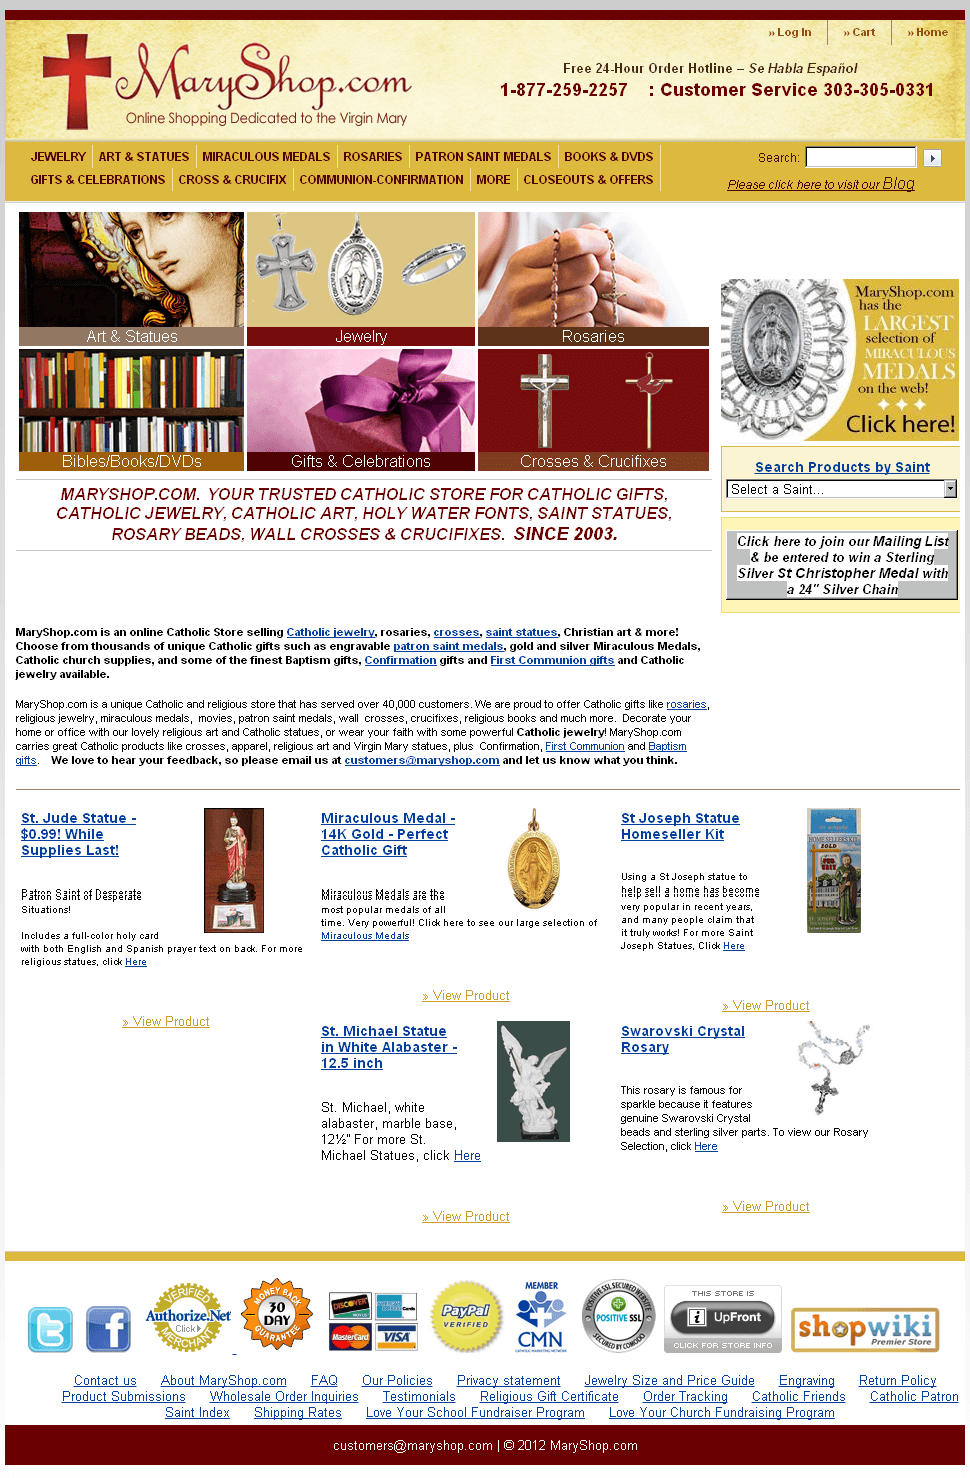 PHP eCommerce Website for Retail 'MaryShop' - Online Catholic Gift Store